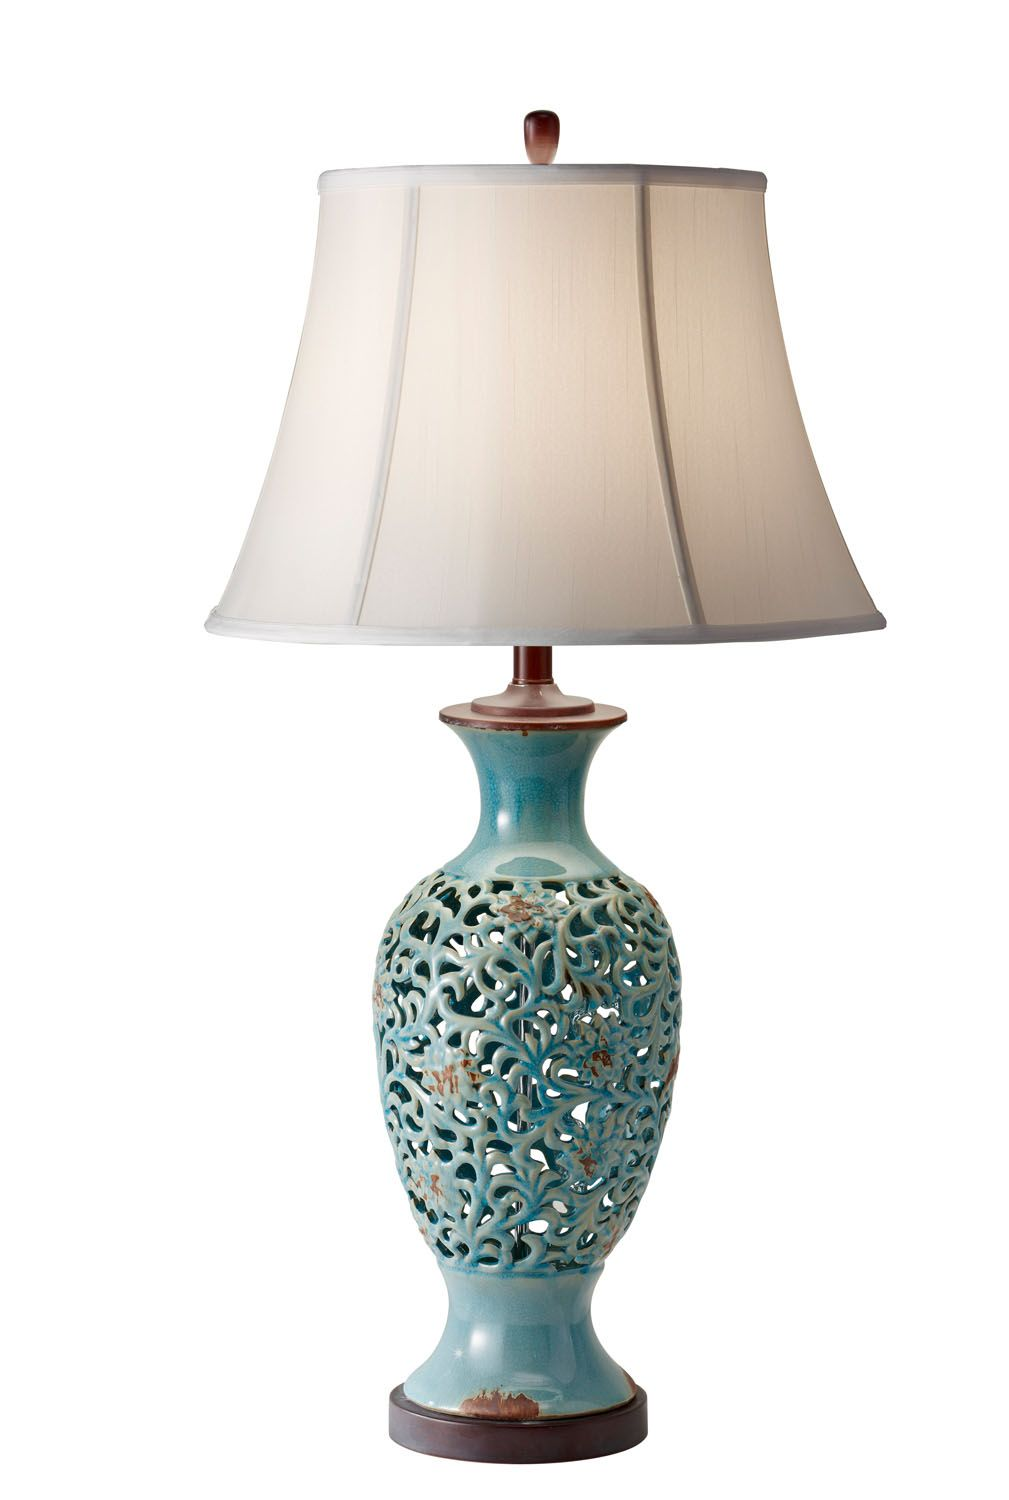 Lamps Table Lamps Love This Cute Little Lamp Table Lamp